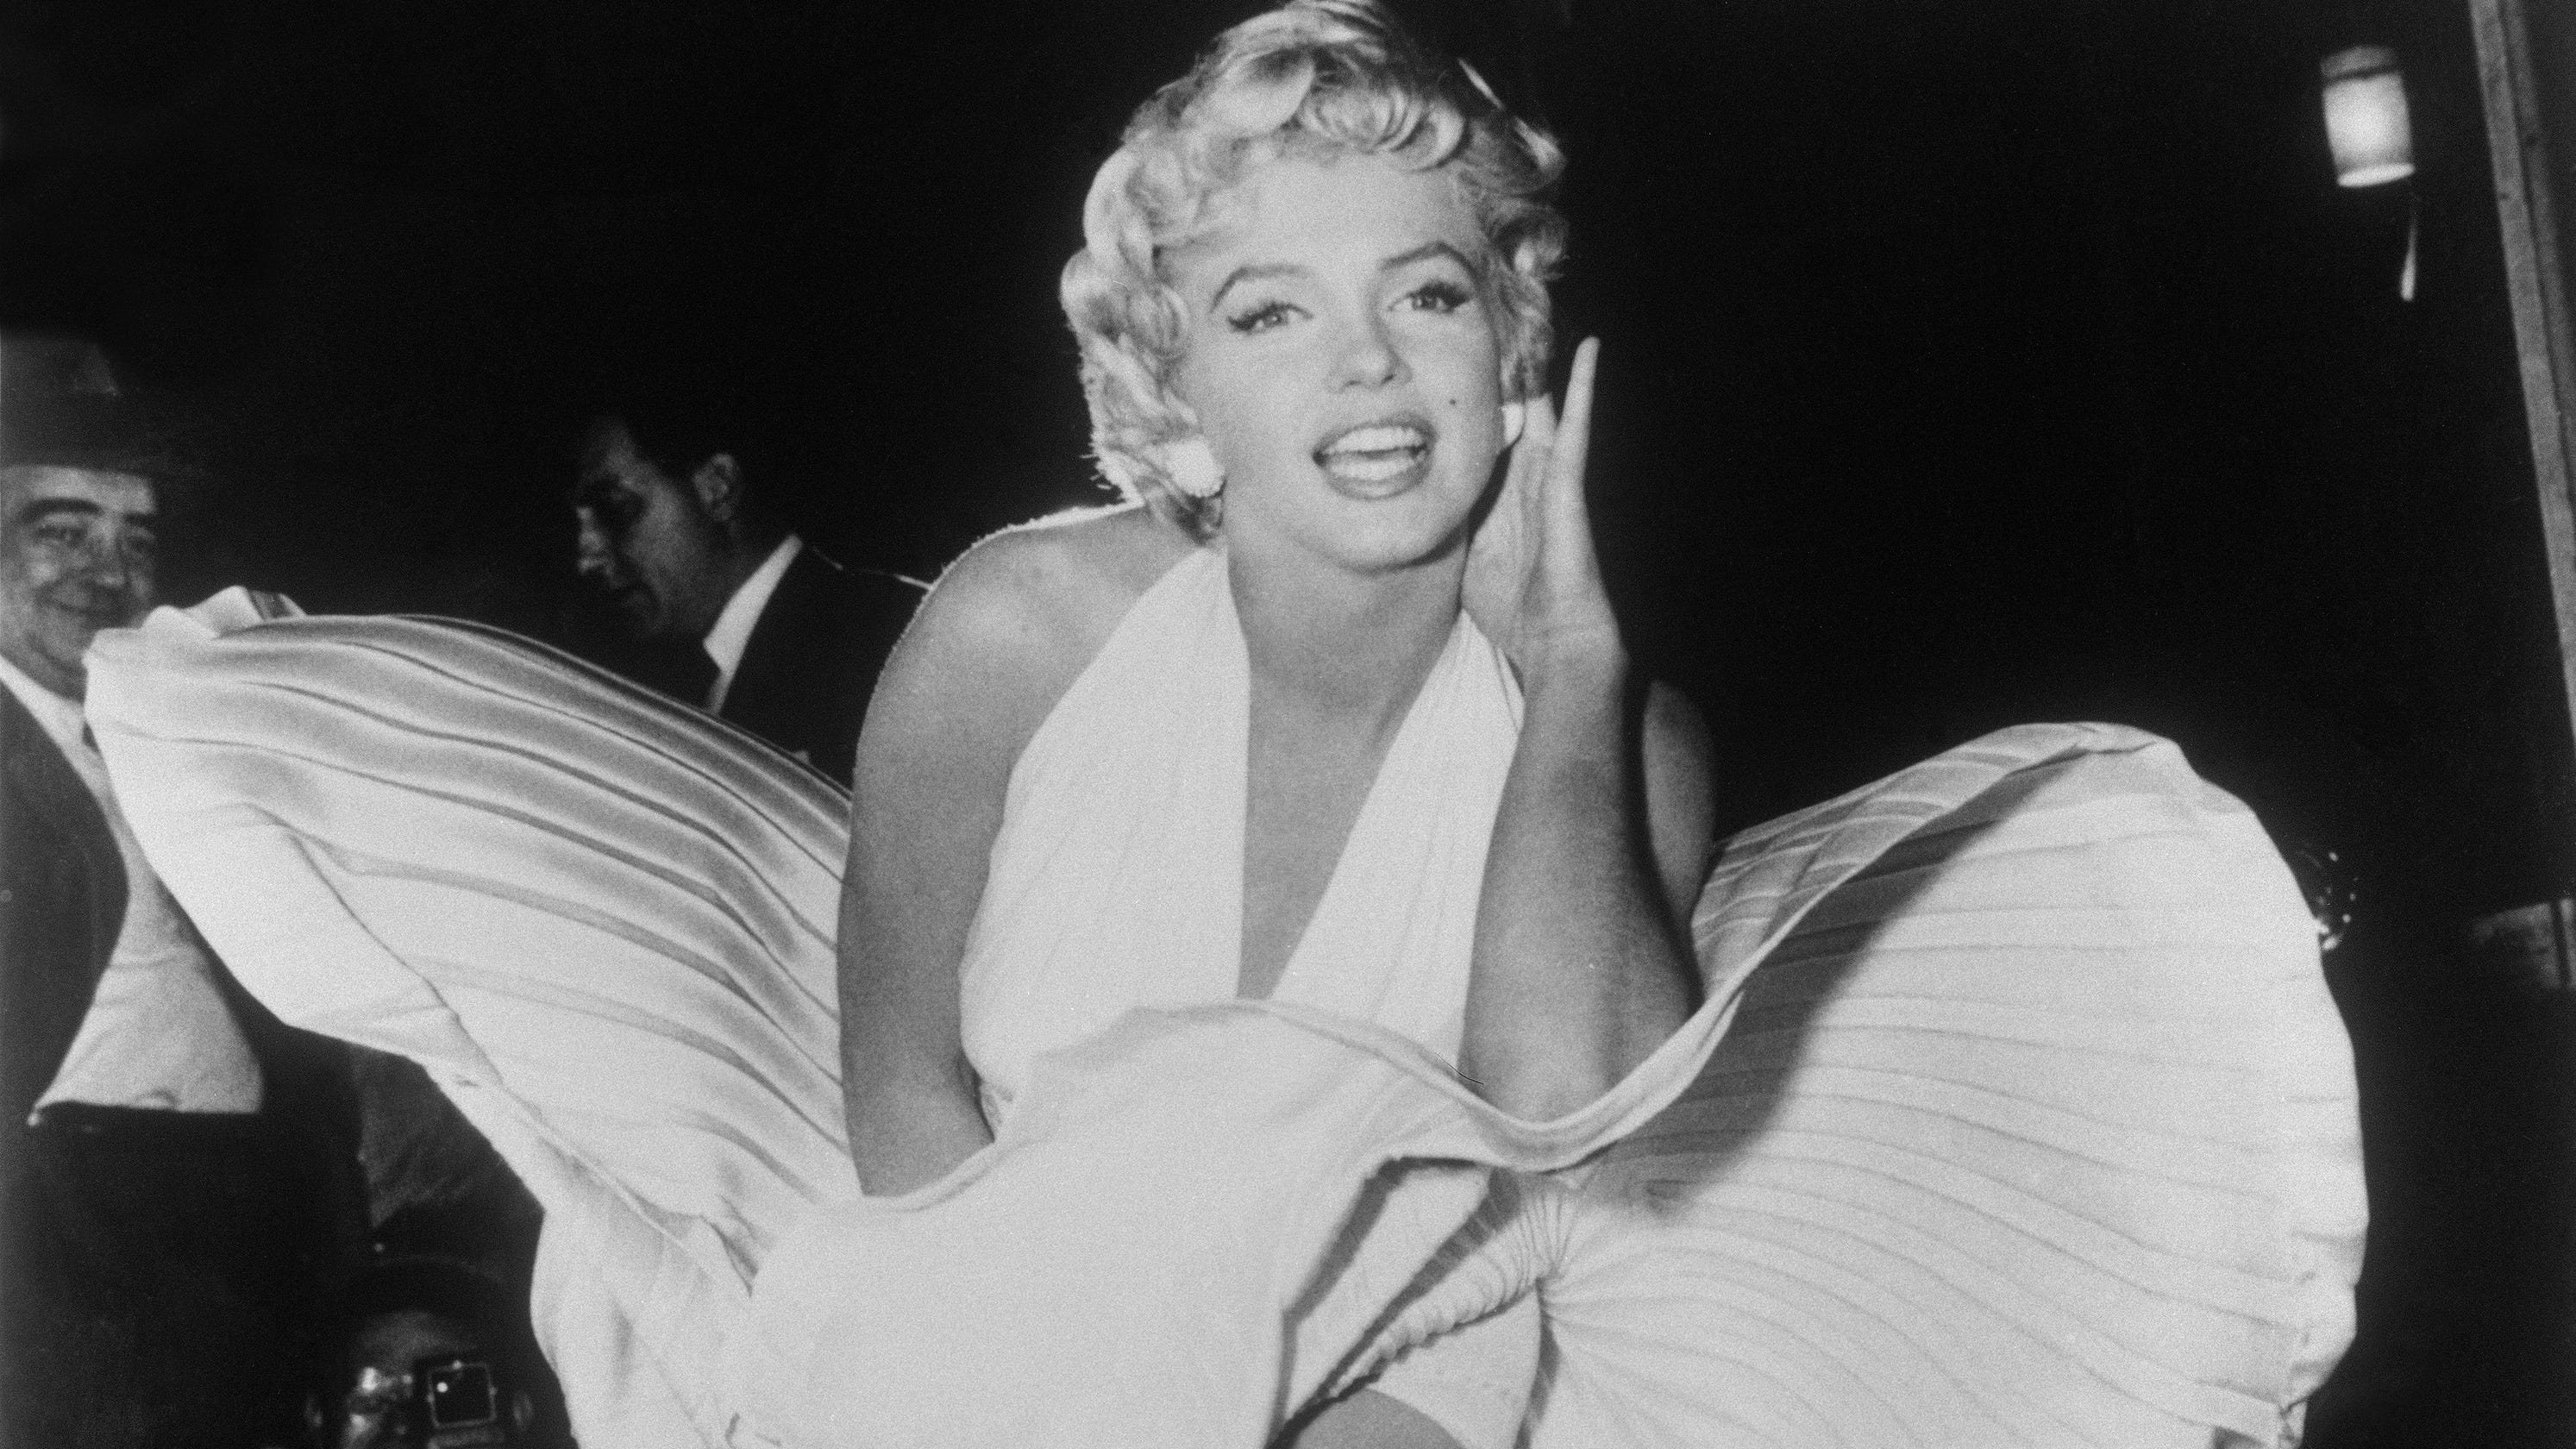 a long lost marilyn monroe nude scene has been discovered